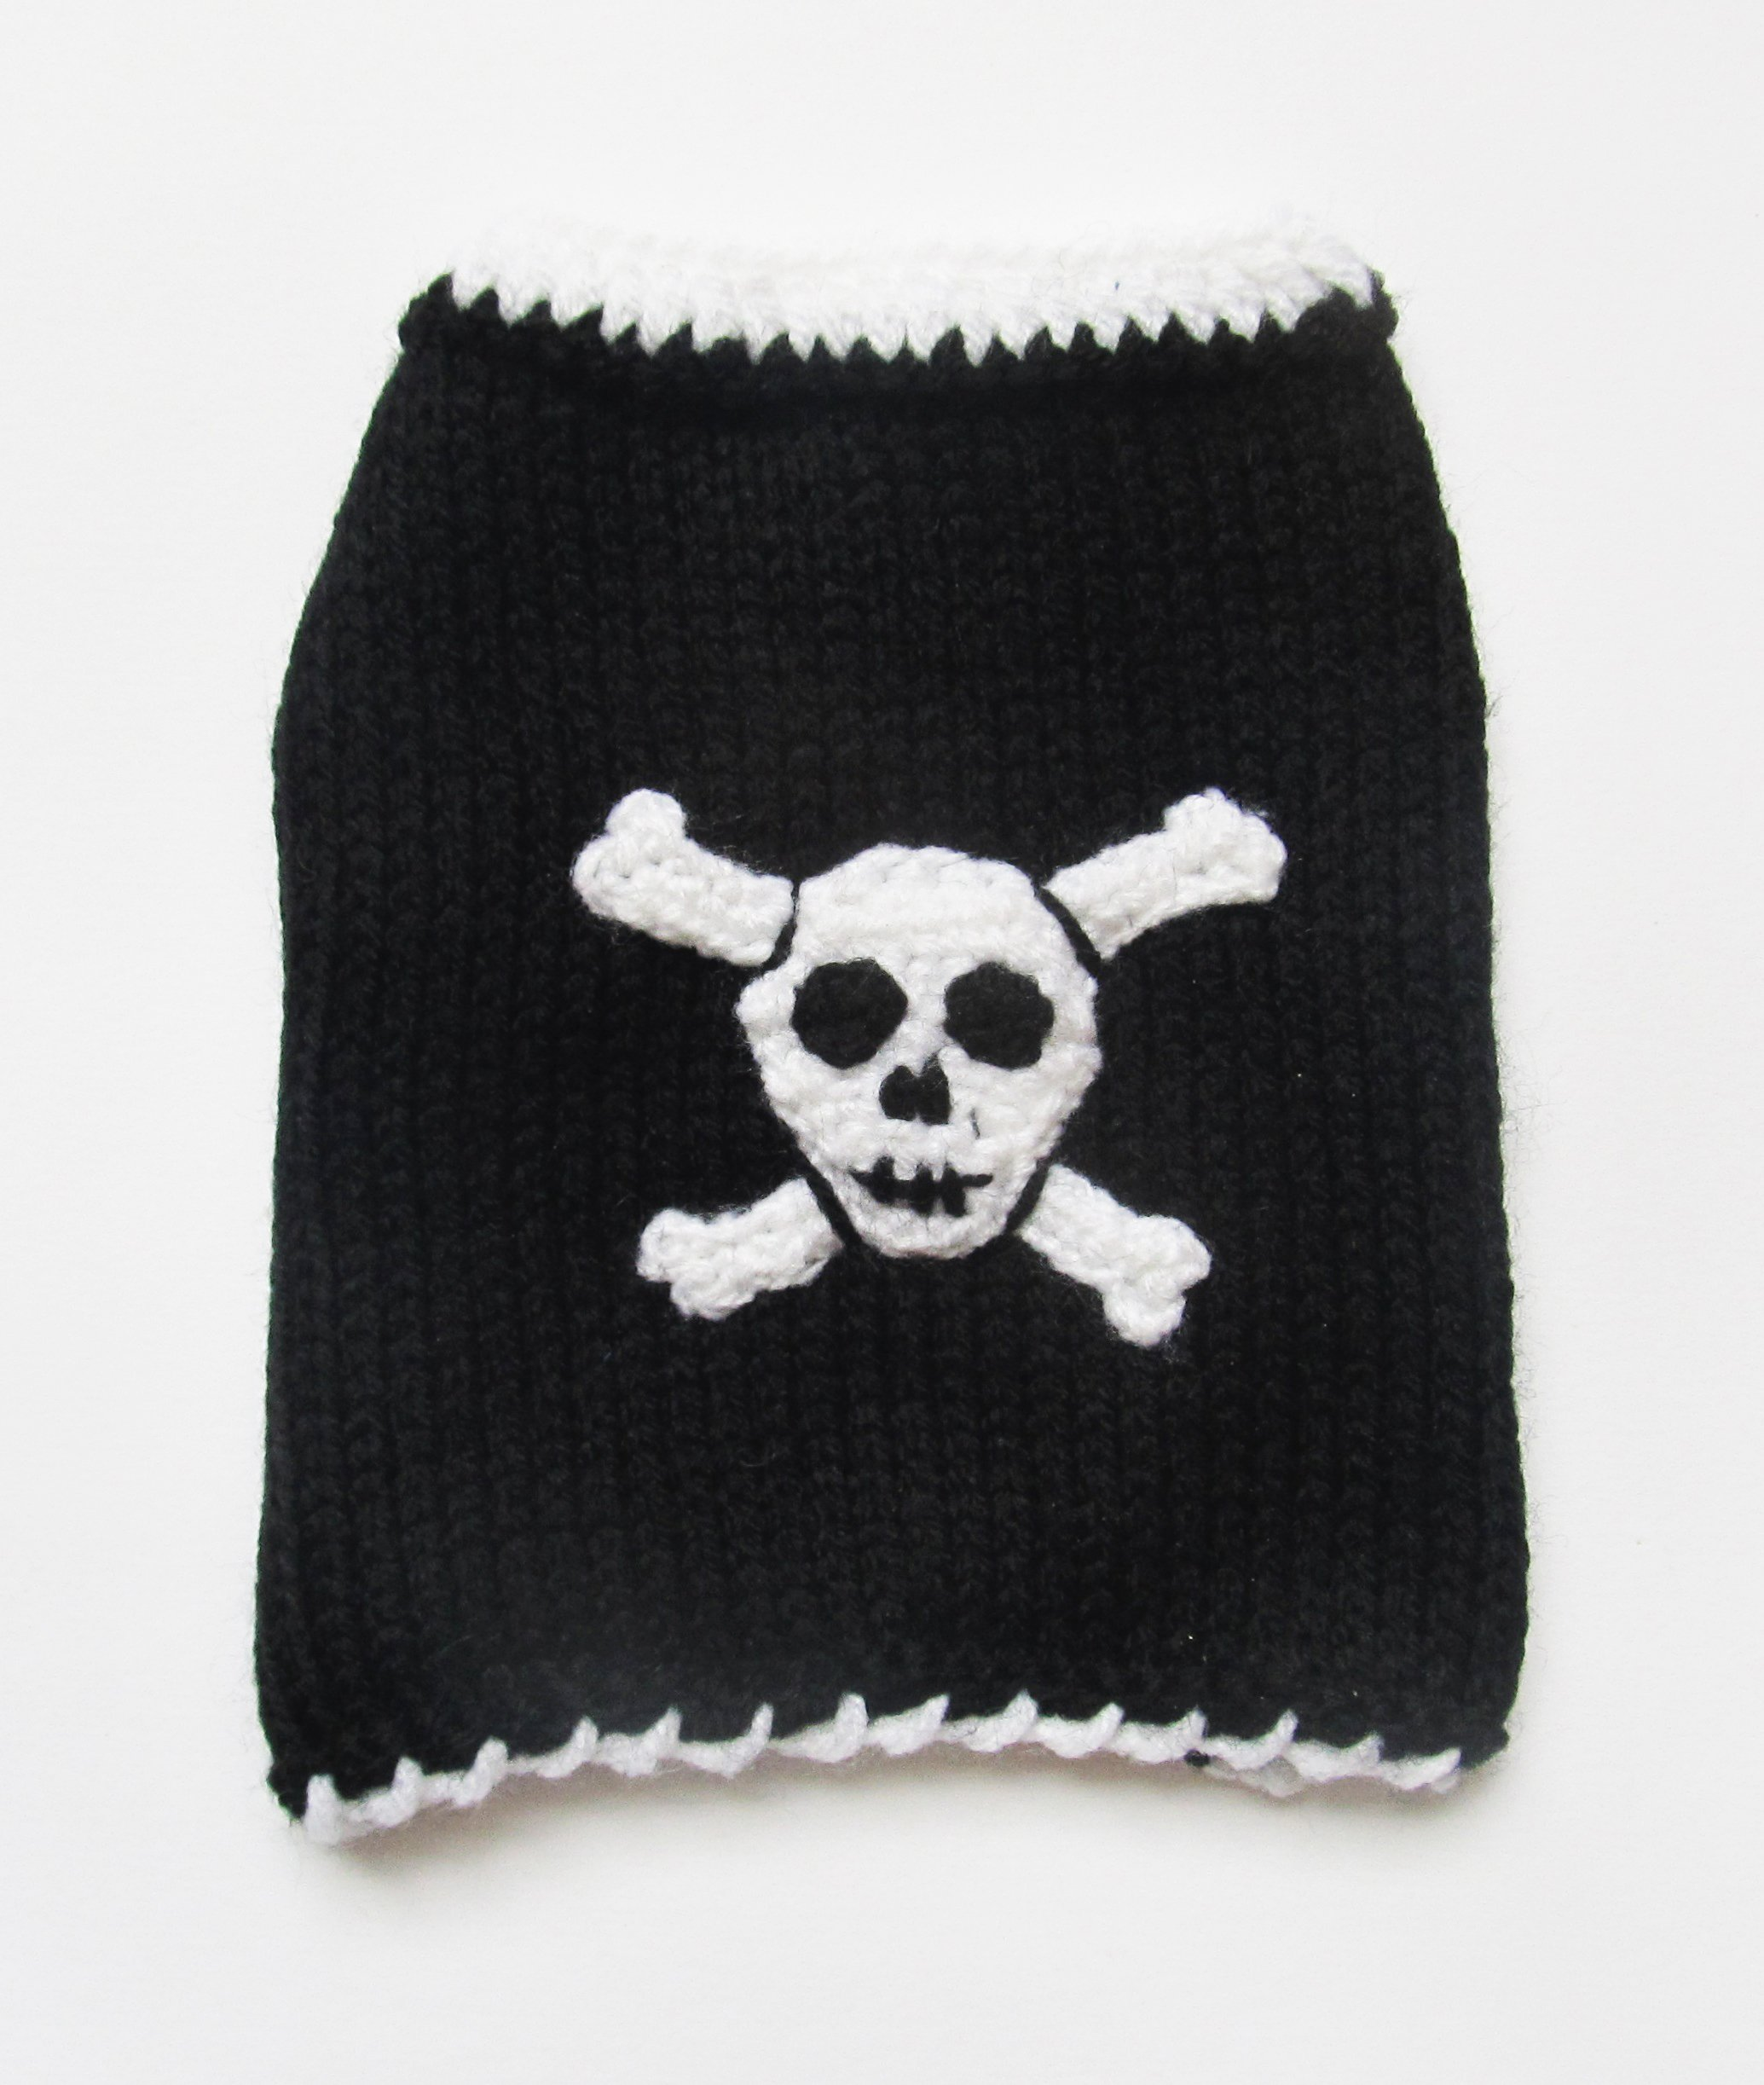 Skull Dog Sweater X Small Dog Clothes Yorkie Clothes Puppy Clothing Pet Apparel Different Sizes (XS)